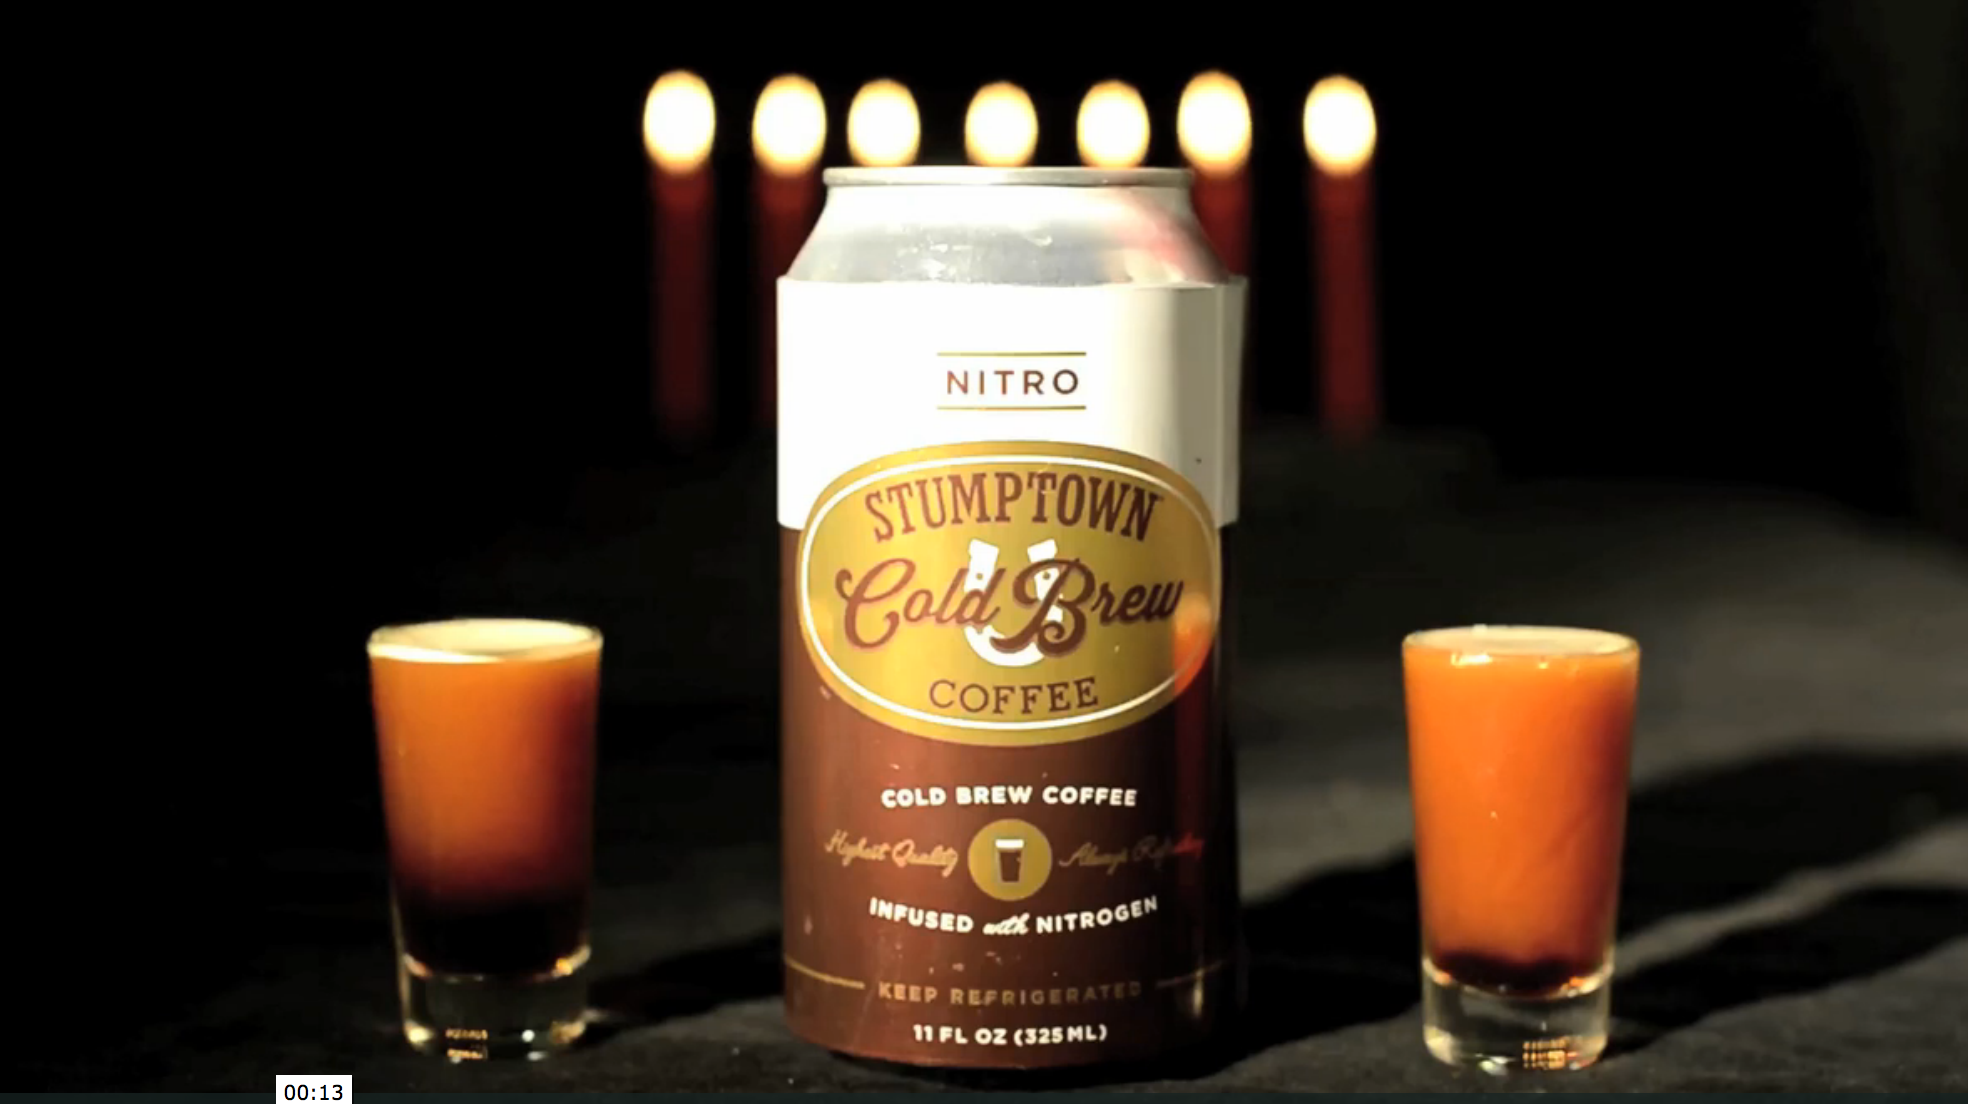 Stumptown Launches Cold Brew Nitro in a Can